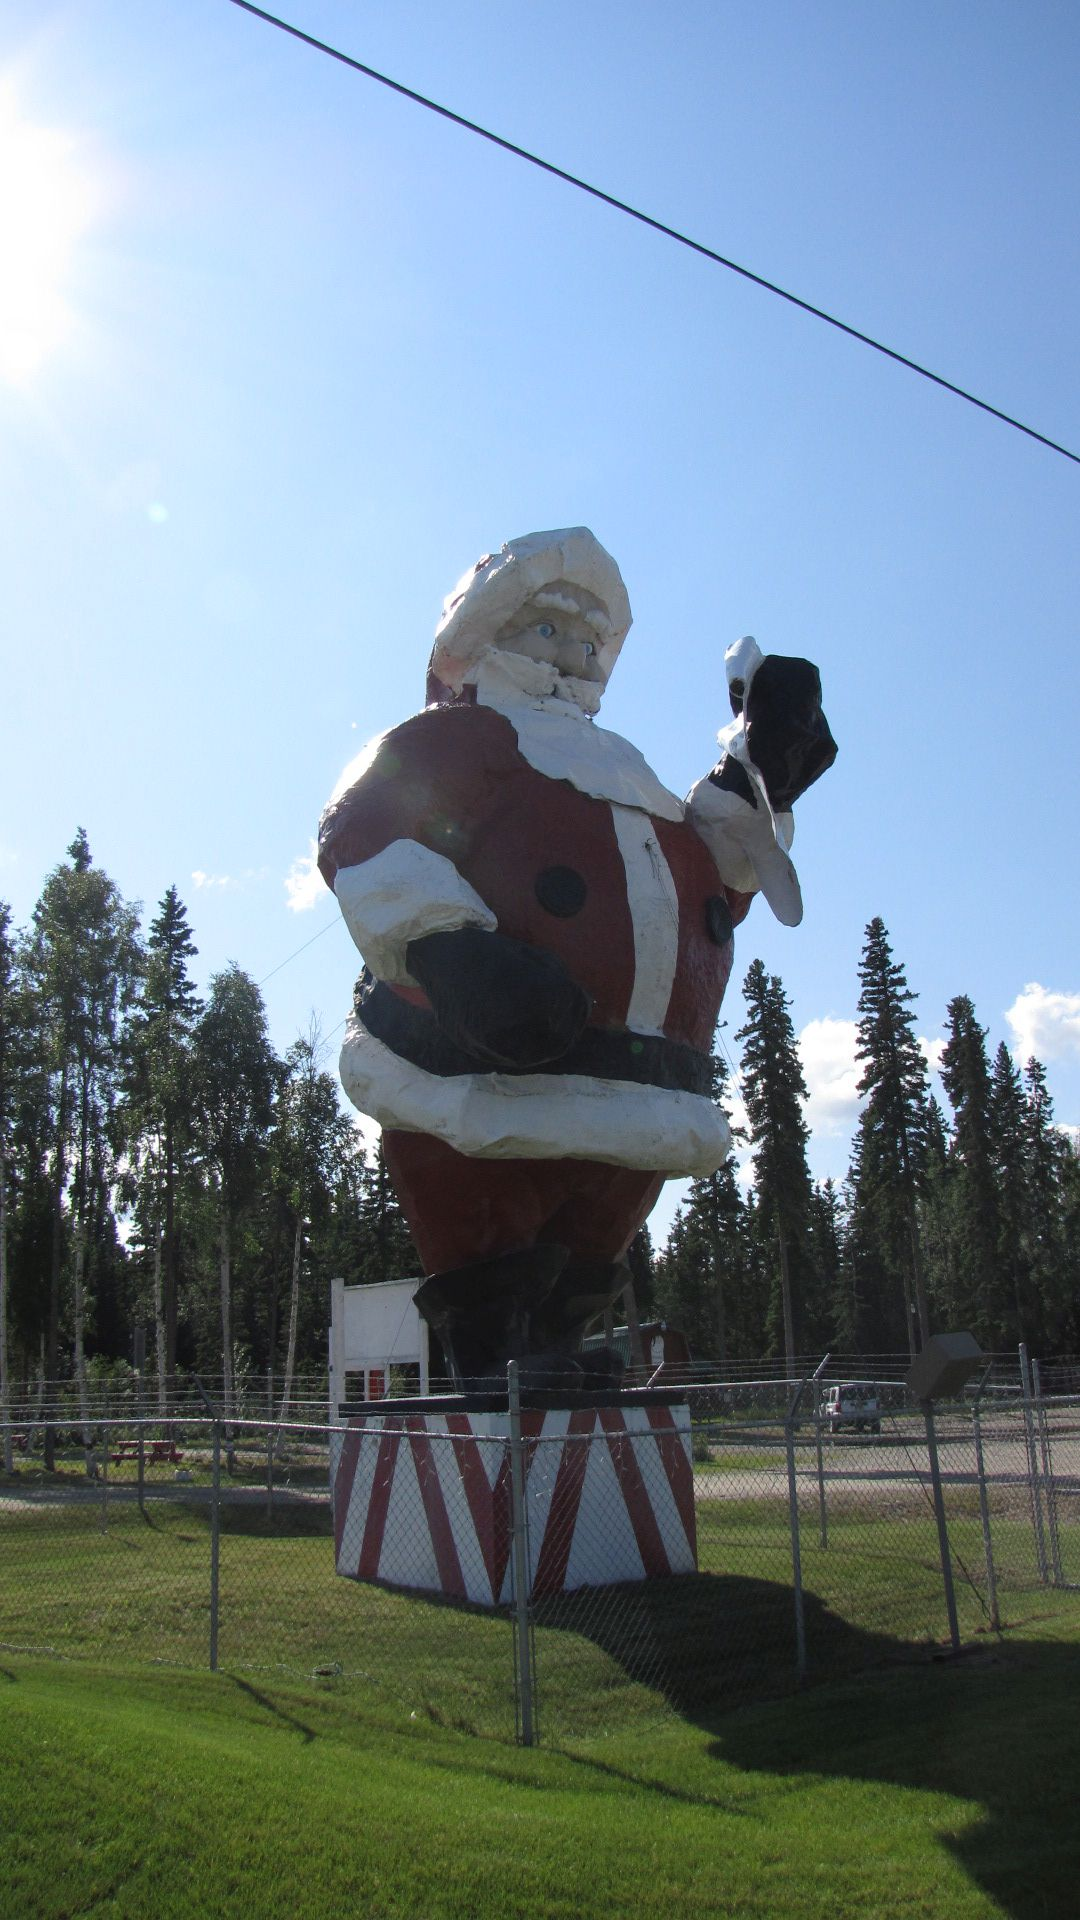 'North Pole' nr Fairbanks - world's biggest Santa (soon to appear in 'Santa versus MechaGodzilla'